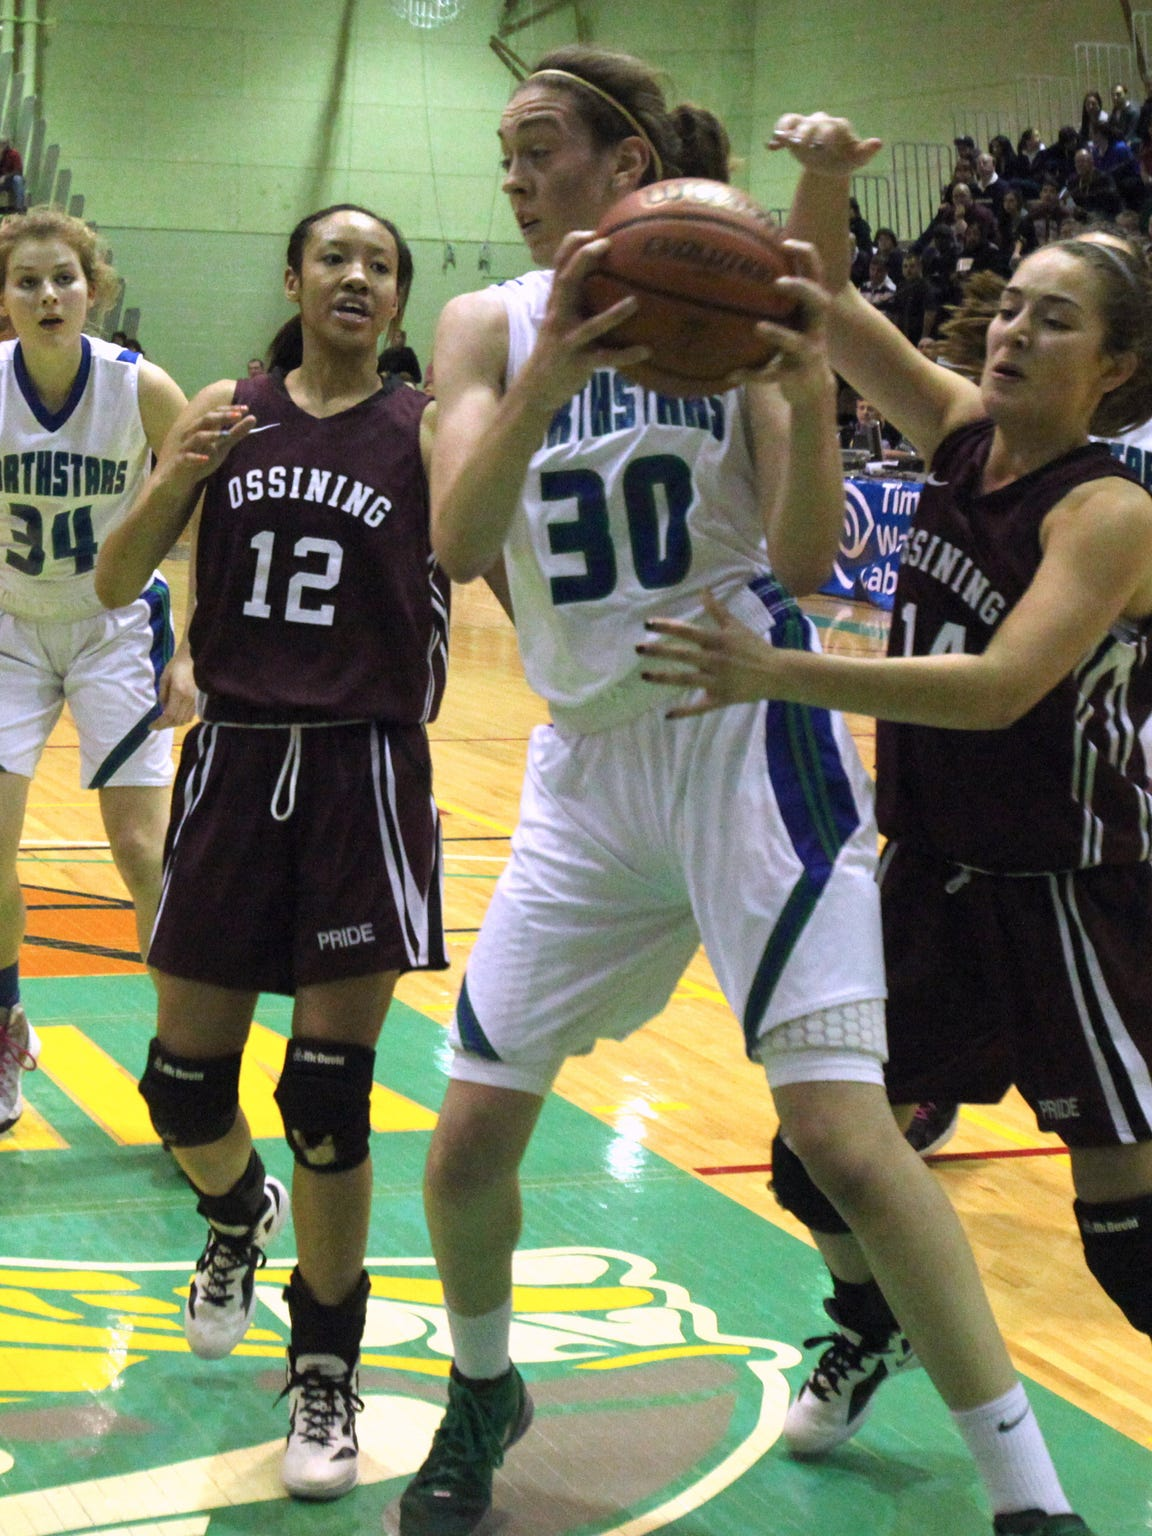 Ossining's Daniella Ferrao, right, pressures Cicero North's Breanna Stewart during their NYSPHSAA Class AA state championship semifinal at Hudson Valley Community College in Troy March 16, 2012. Ossining lost 79-51.